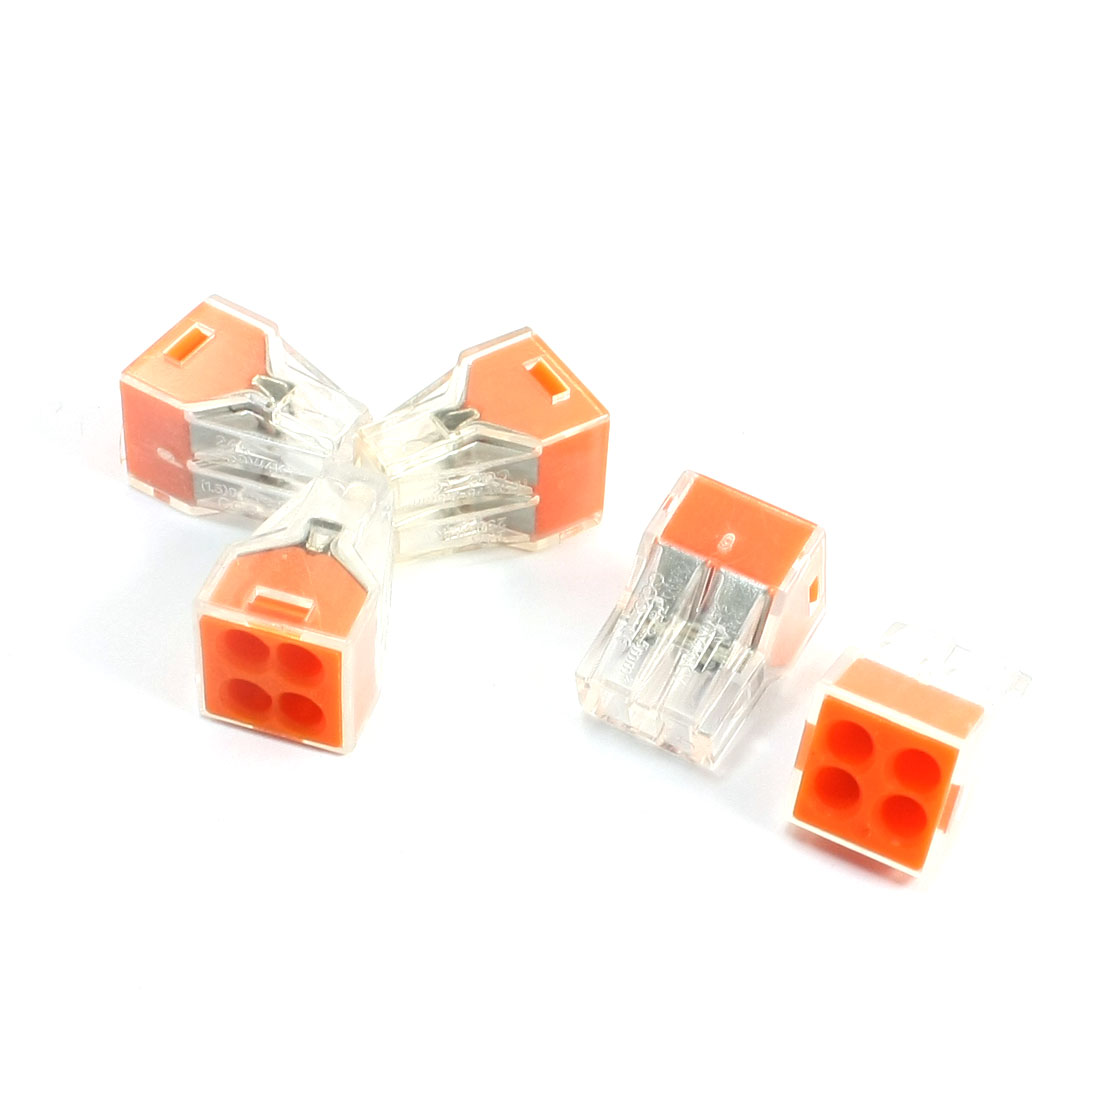 5-Pcs-0-75-2-5mm2-1-5-2-5mm2-4-Cable-Push-Wire-Quick-Connector-AC-250V-24A